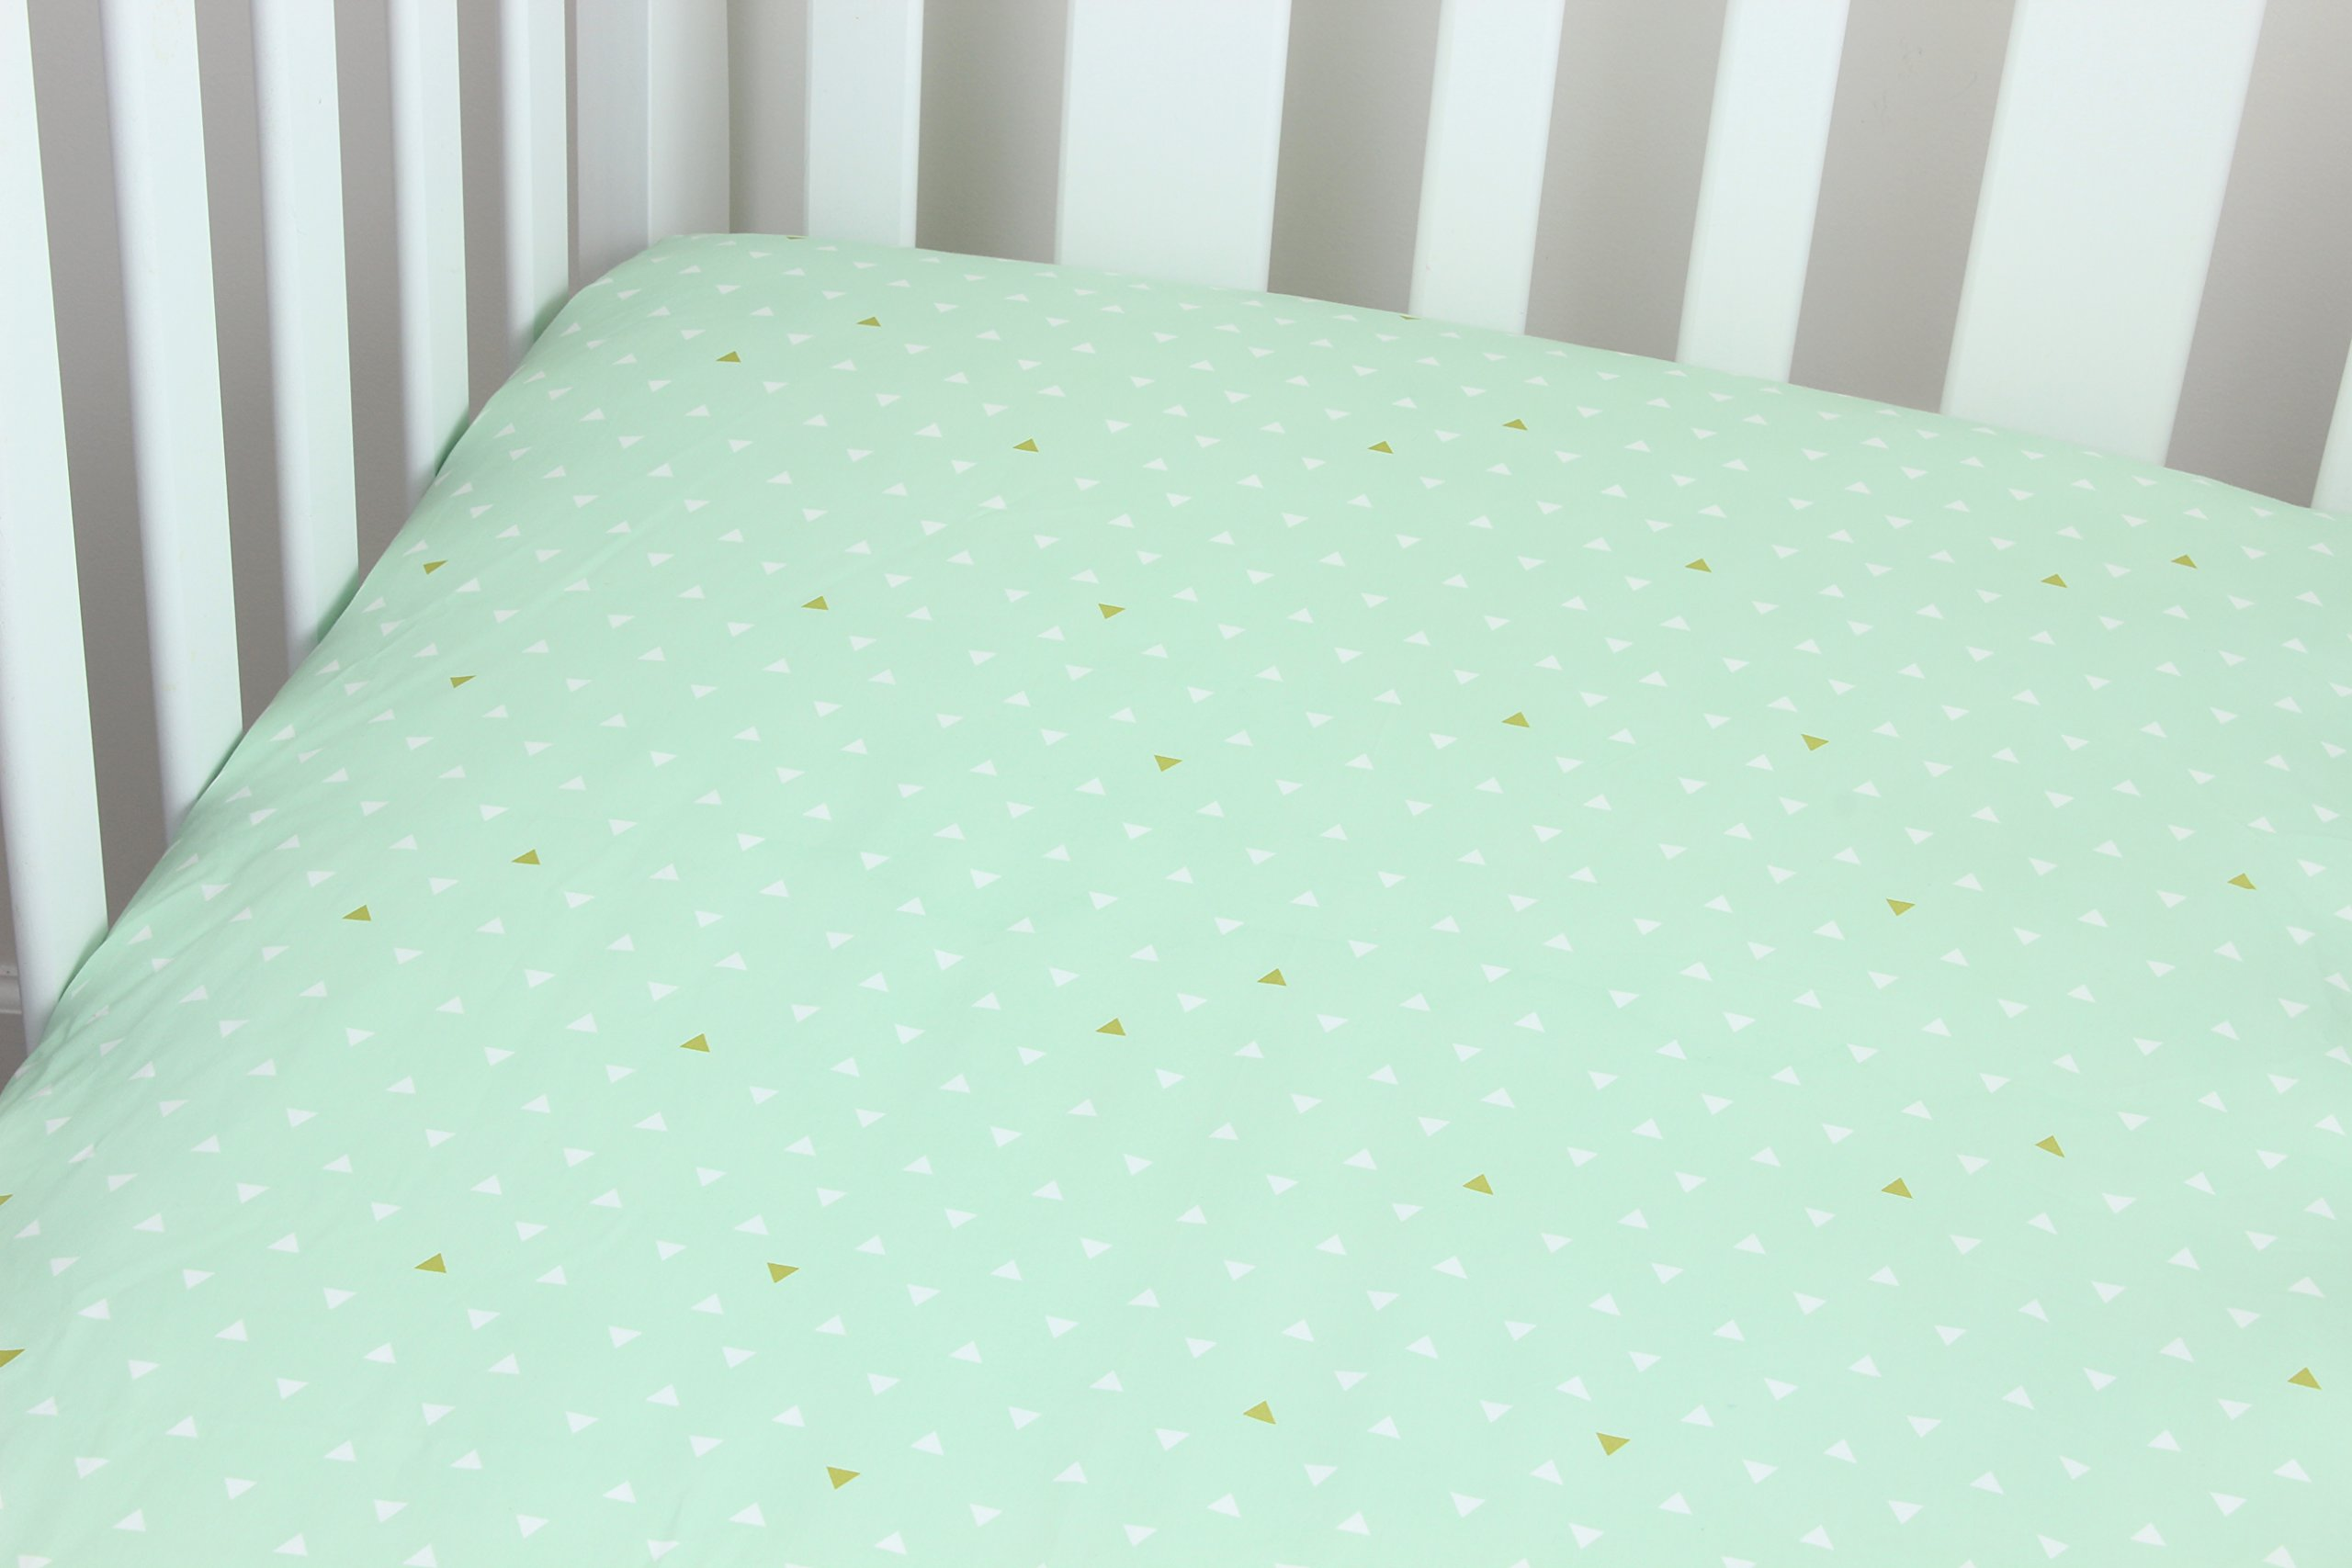 Mint and Gold Triangle Cotton Crib Sheet Southwestern Theme Triangle Tokens Baby Crib Sheet